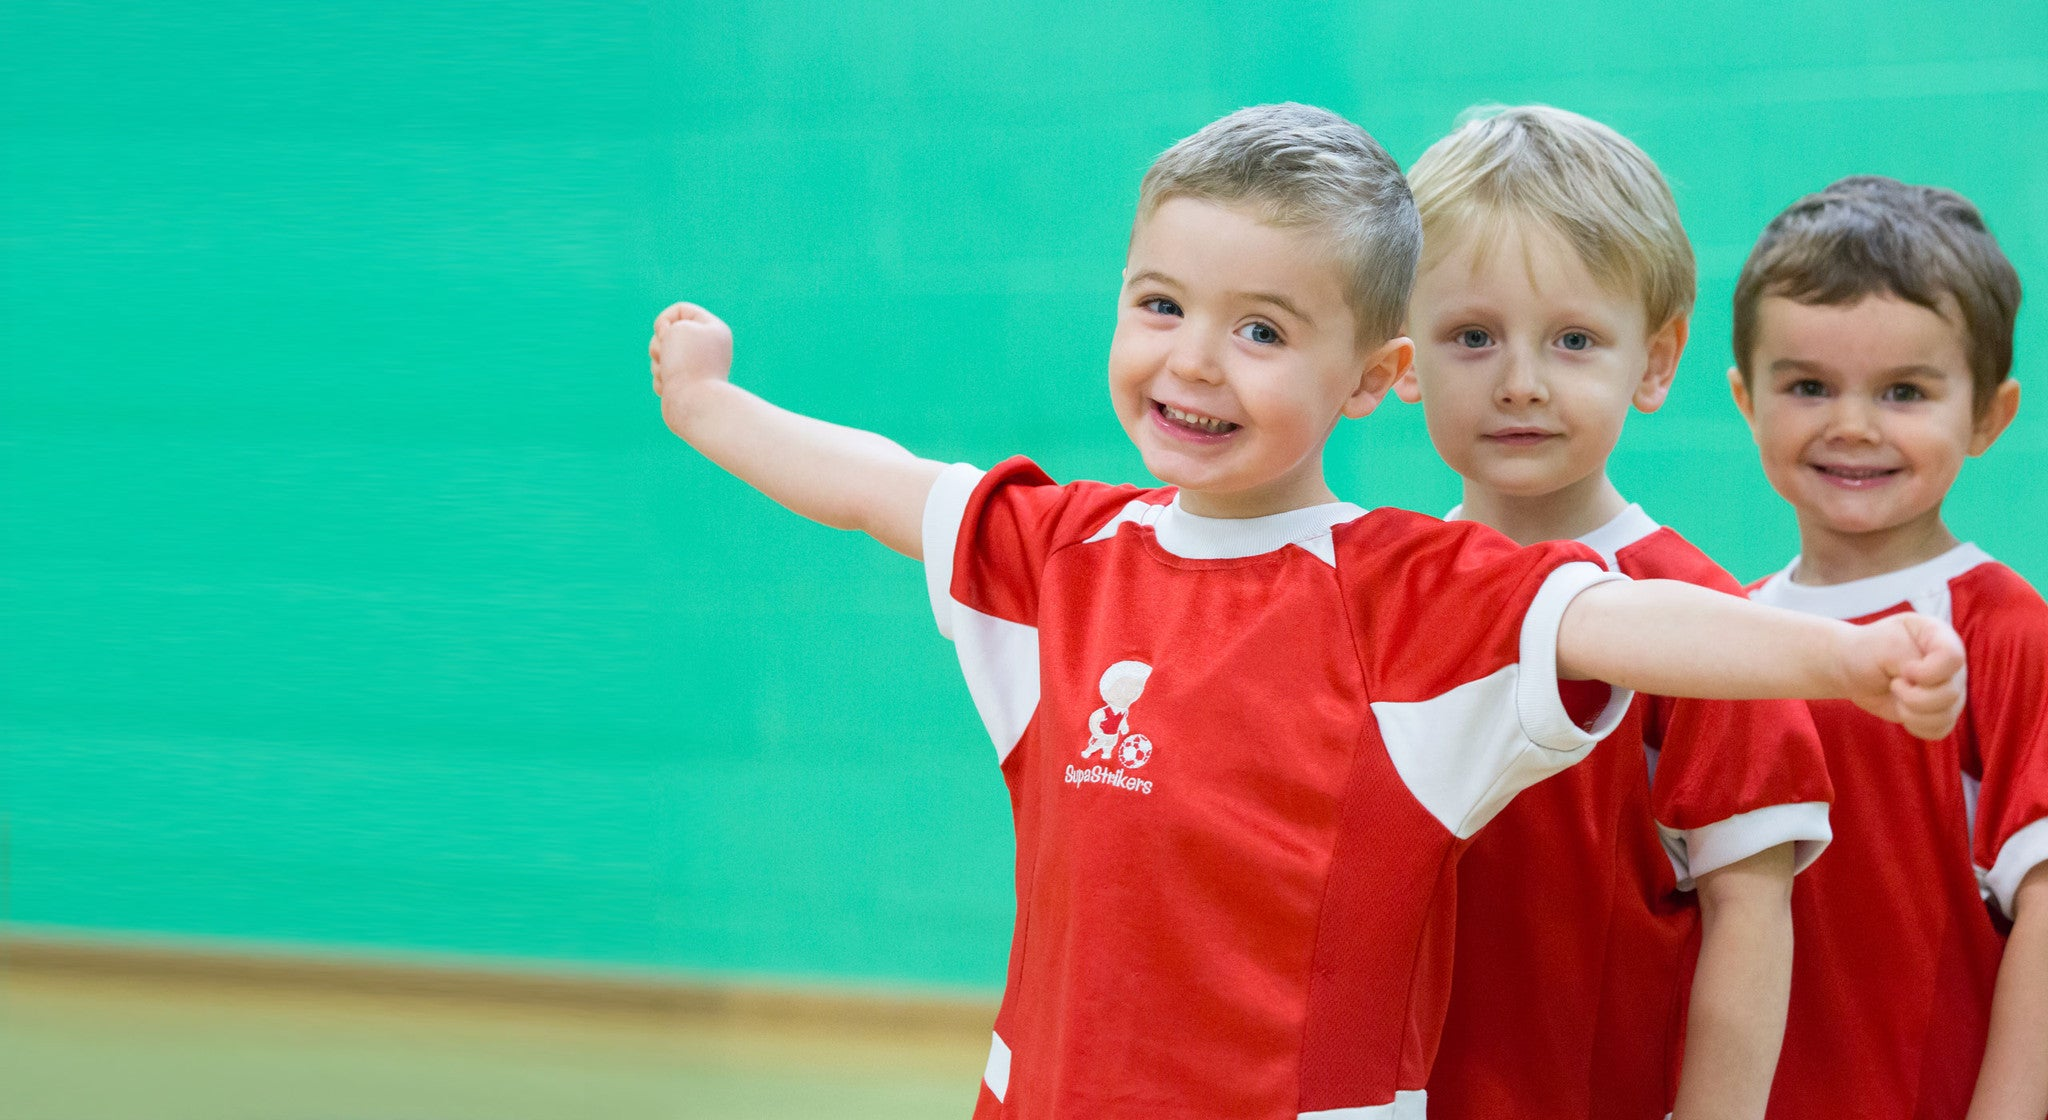 Football coaching for pre-school children